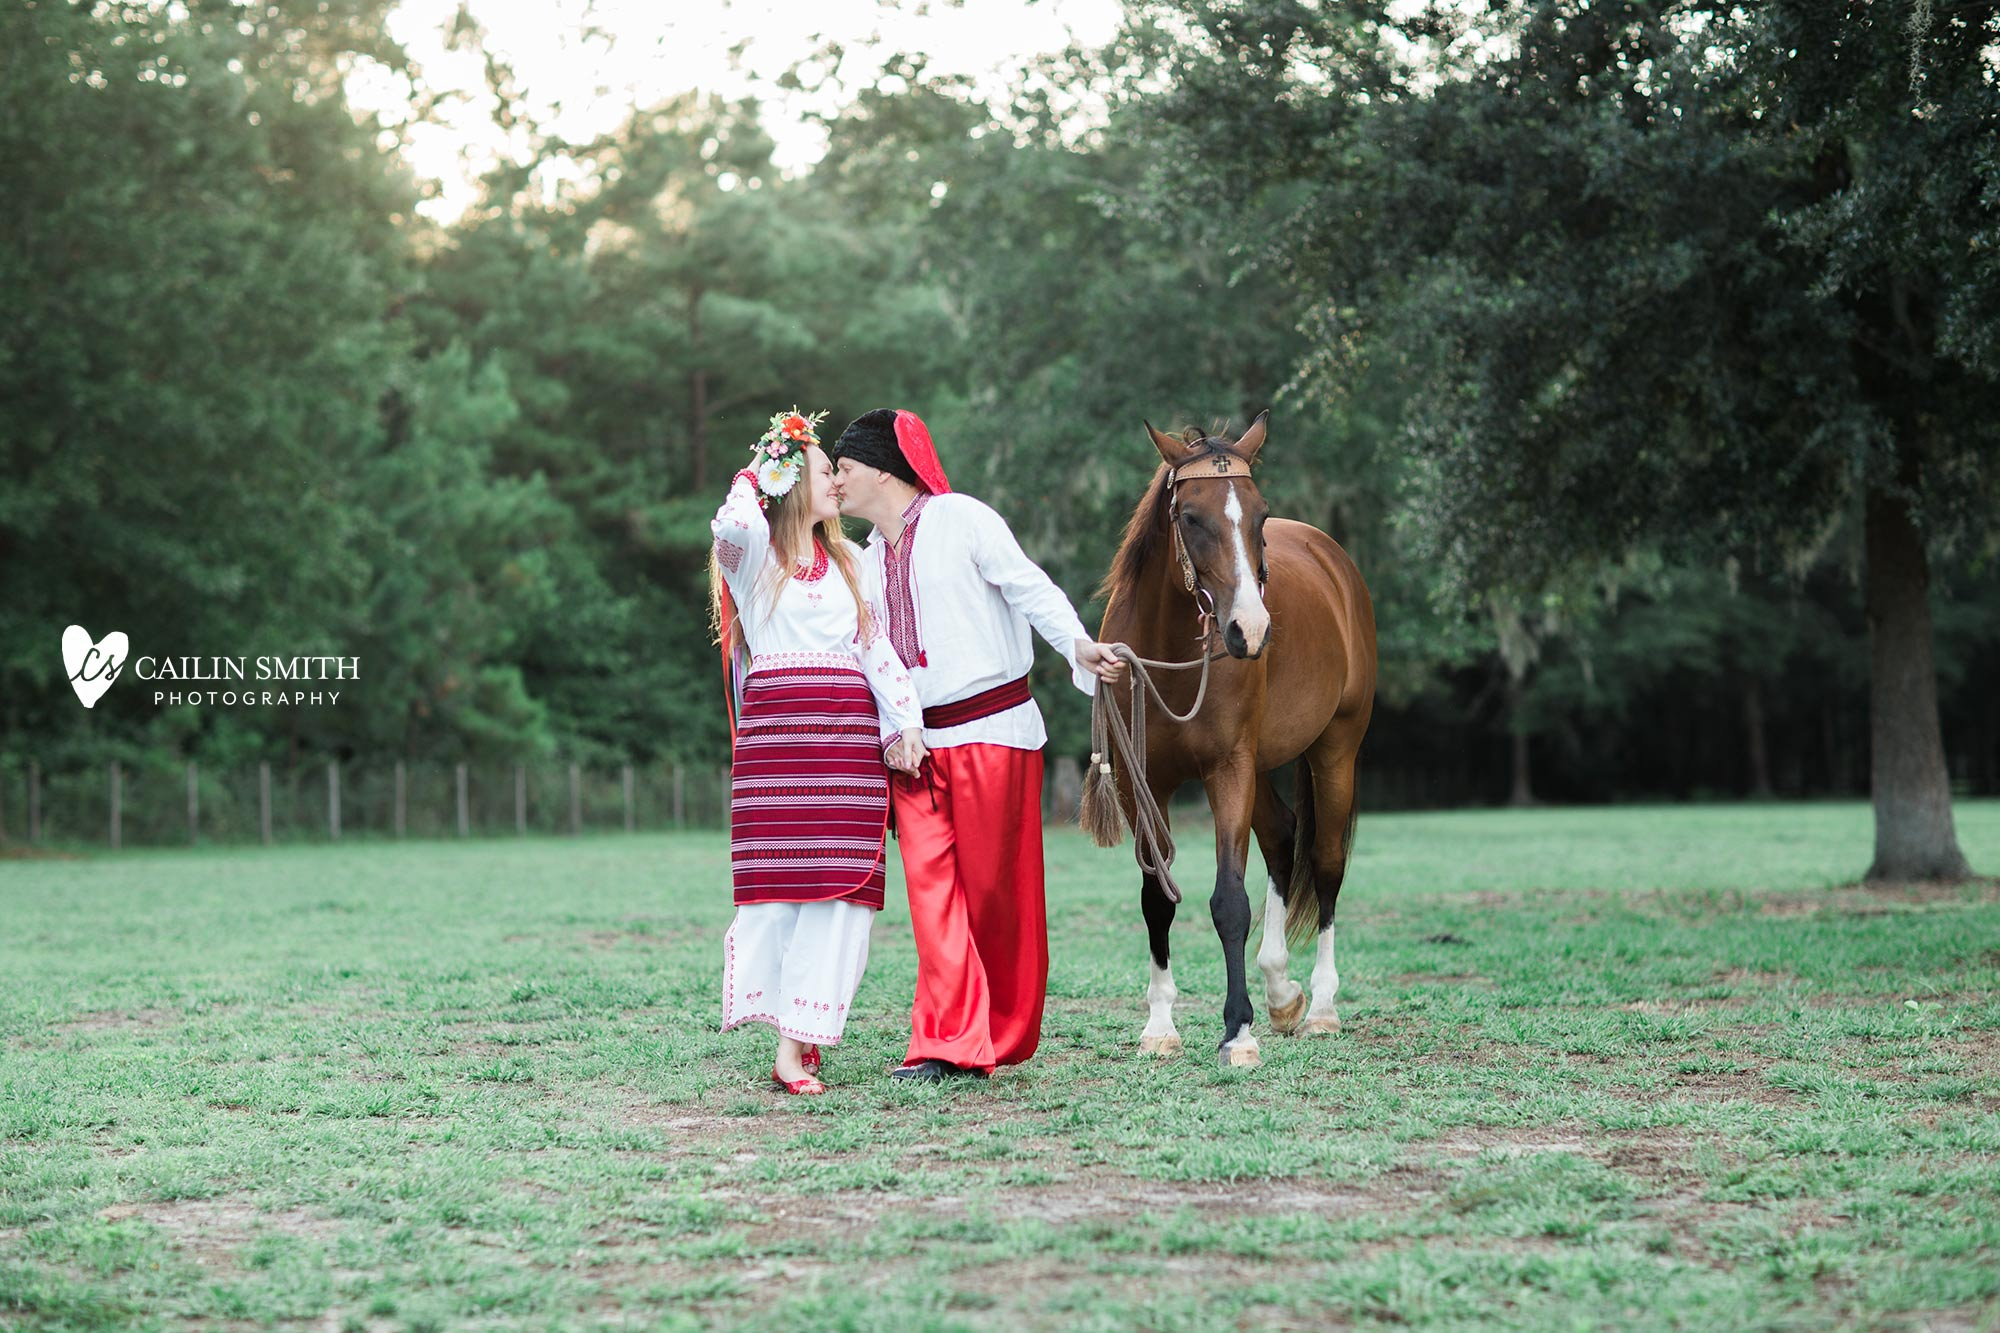 Tetiana_James_Horse_Engagement_Photography_0015.jpg